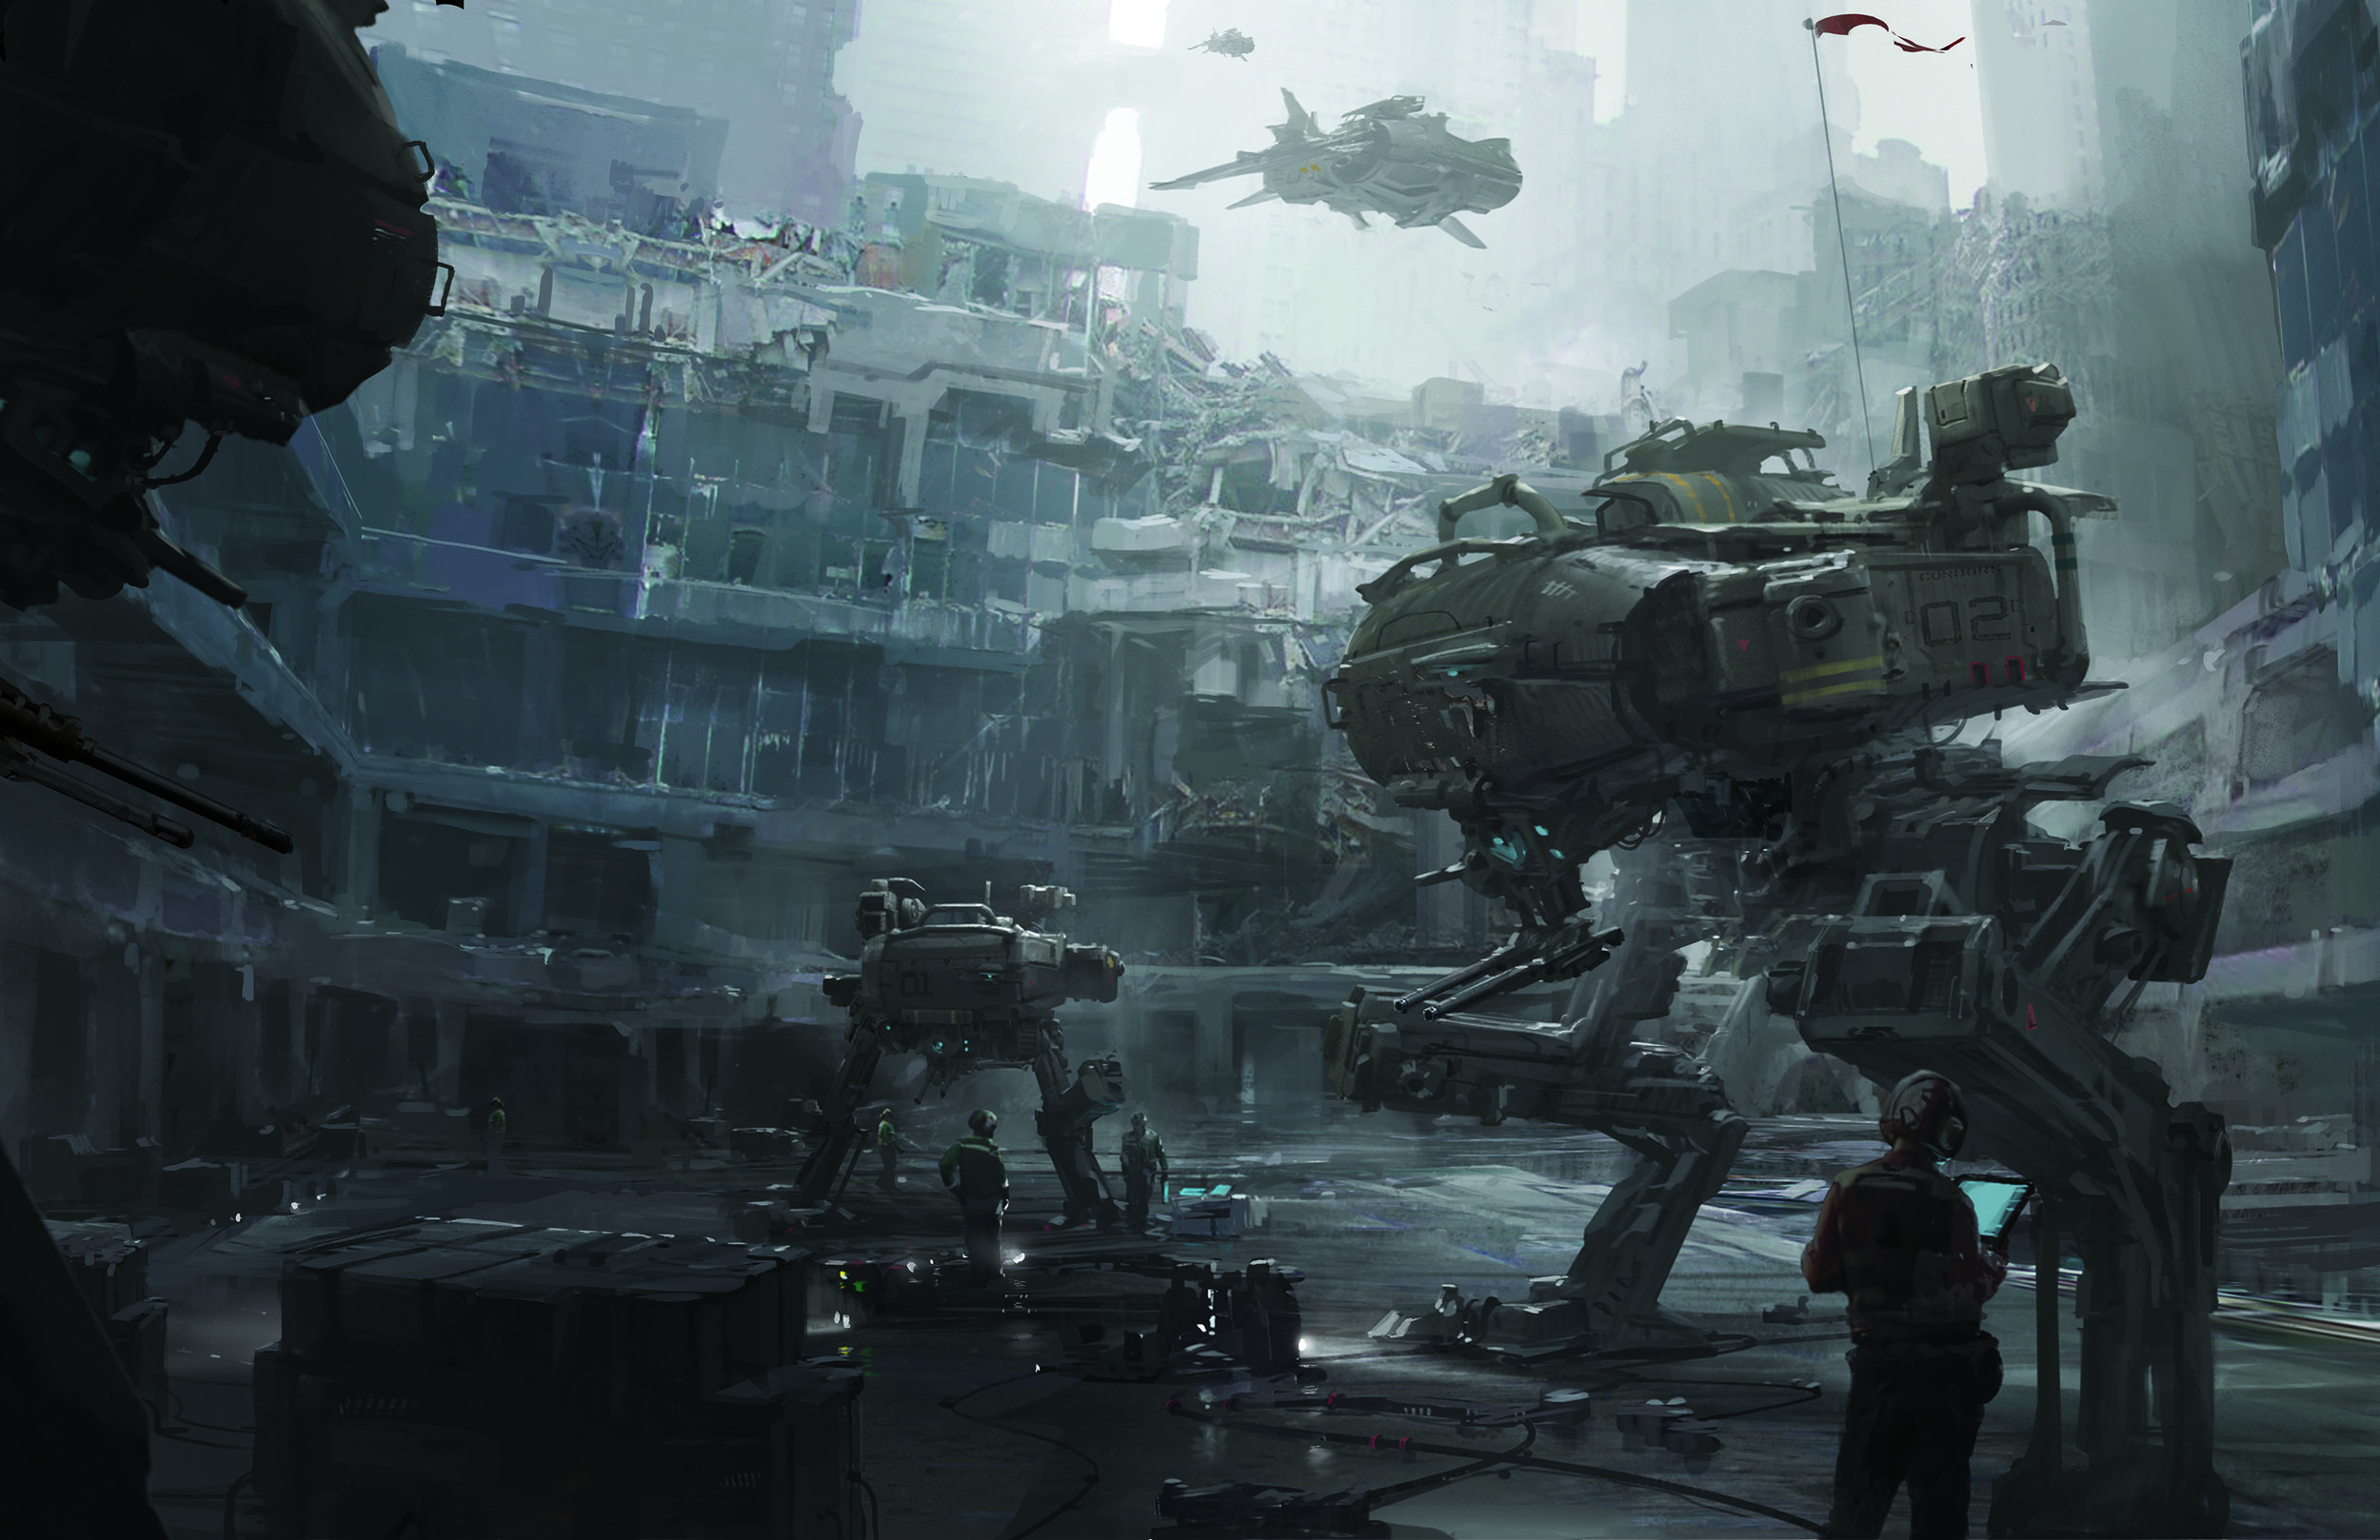 _mech_in_city_05_CMYK_17X11.jpg